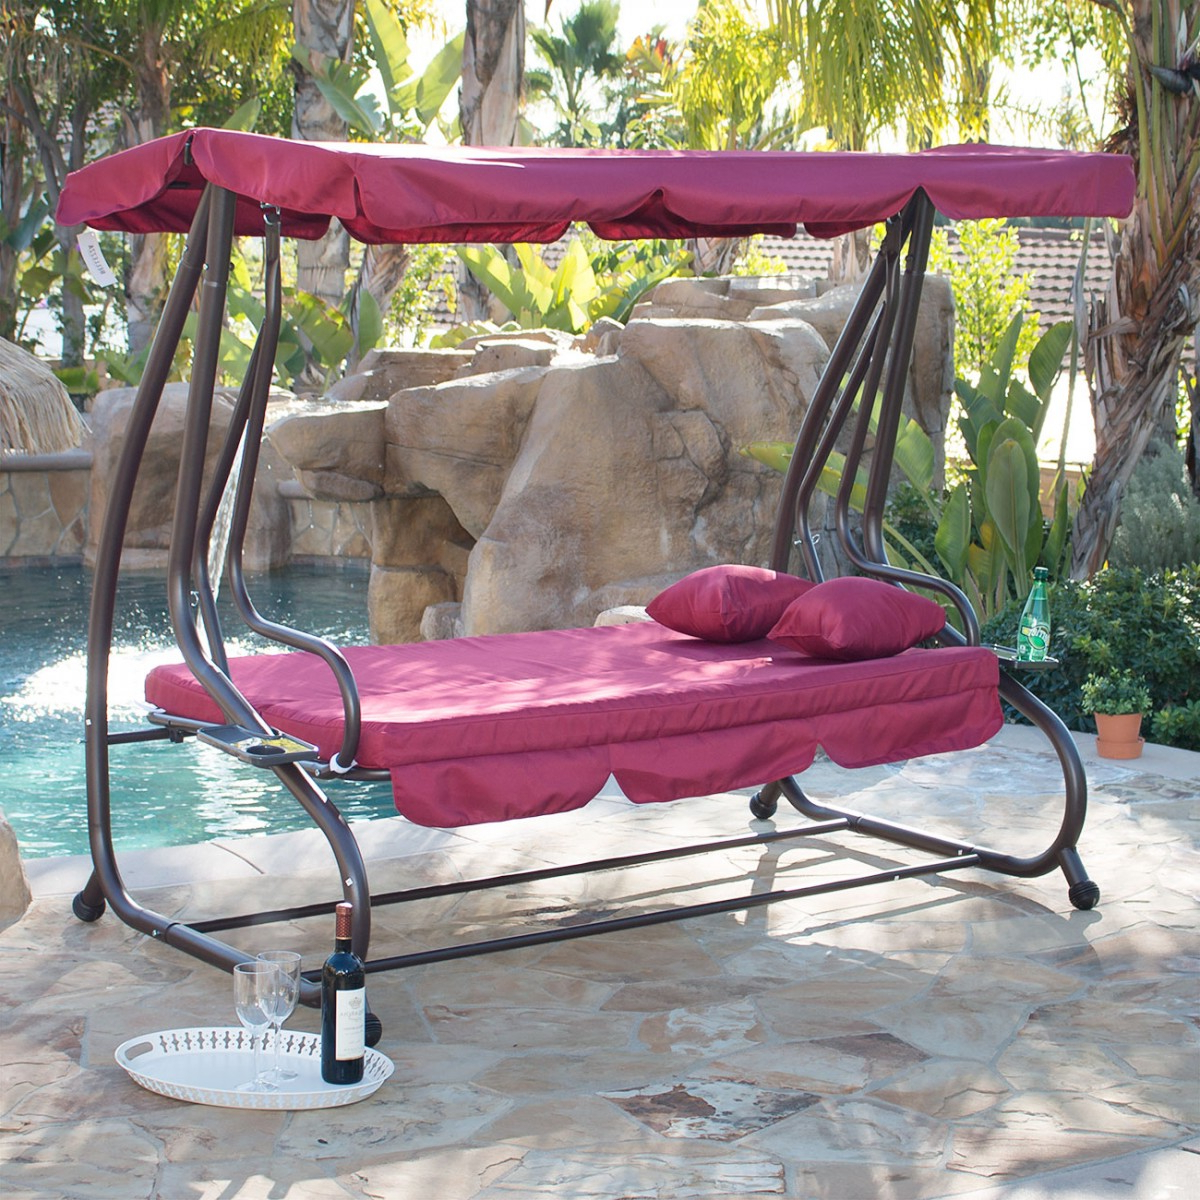 Belleze Outdoor Canopy Porch Swing/bed Hammock Tilt Canopy With Steel Frame (burgundy) Within Trendy Canopy Patio Porch Swings With Pillows And Cup Holders (View 9 of 25)